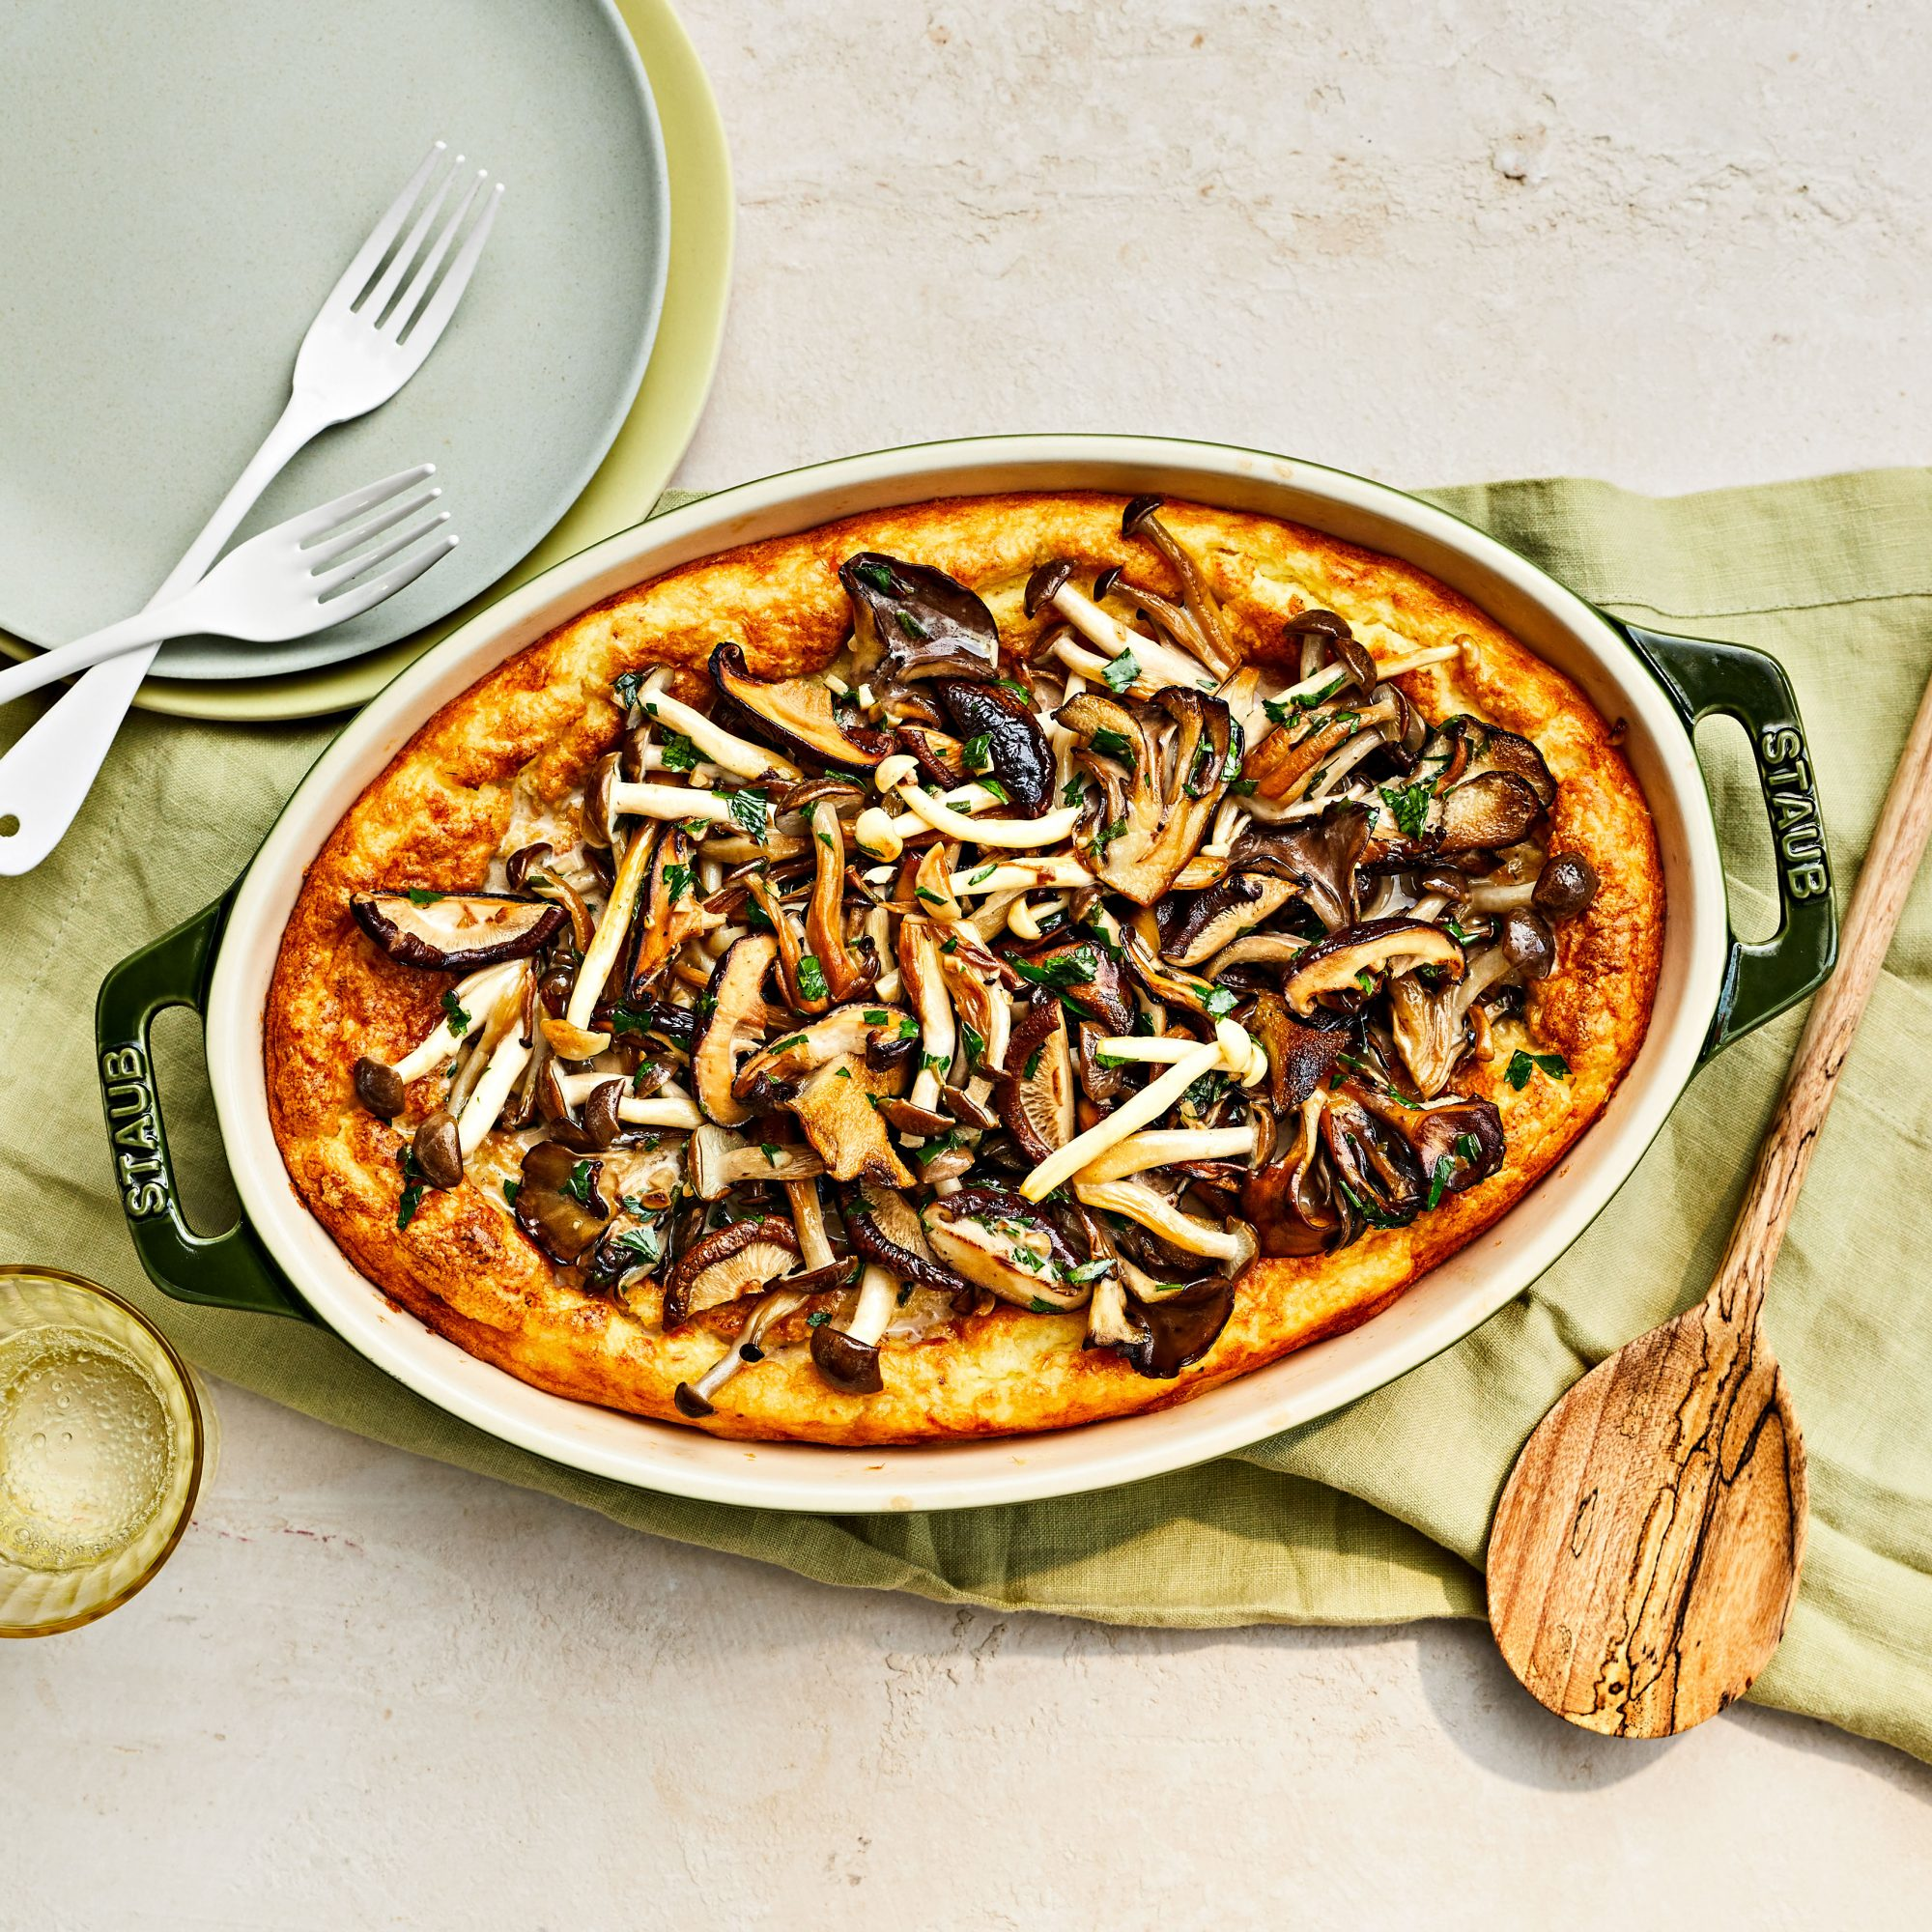 Spoon Bread with Mushrooms and Herbs